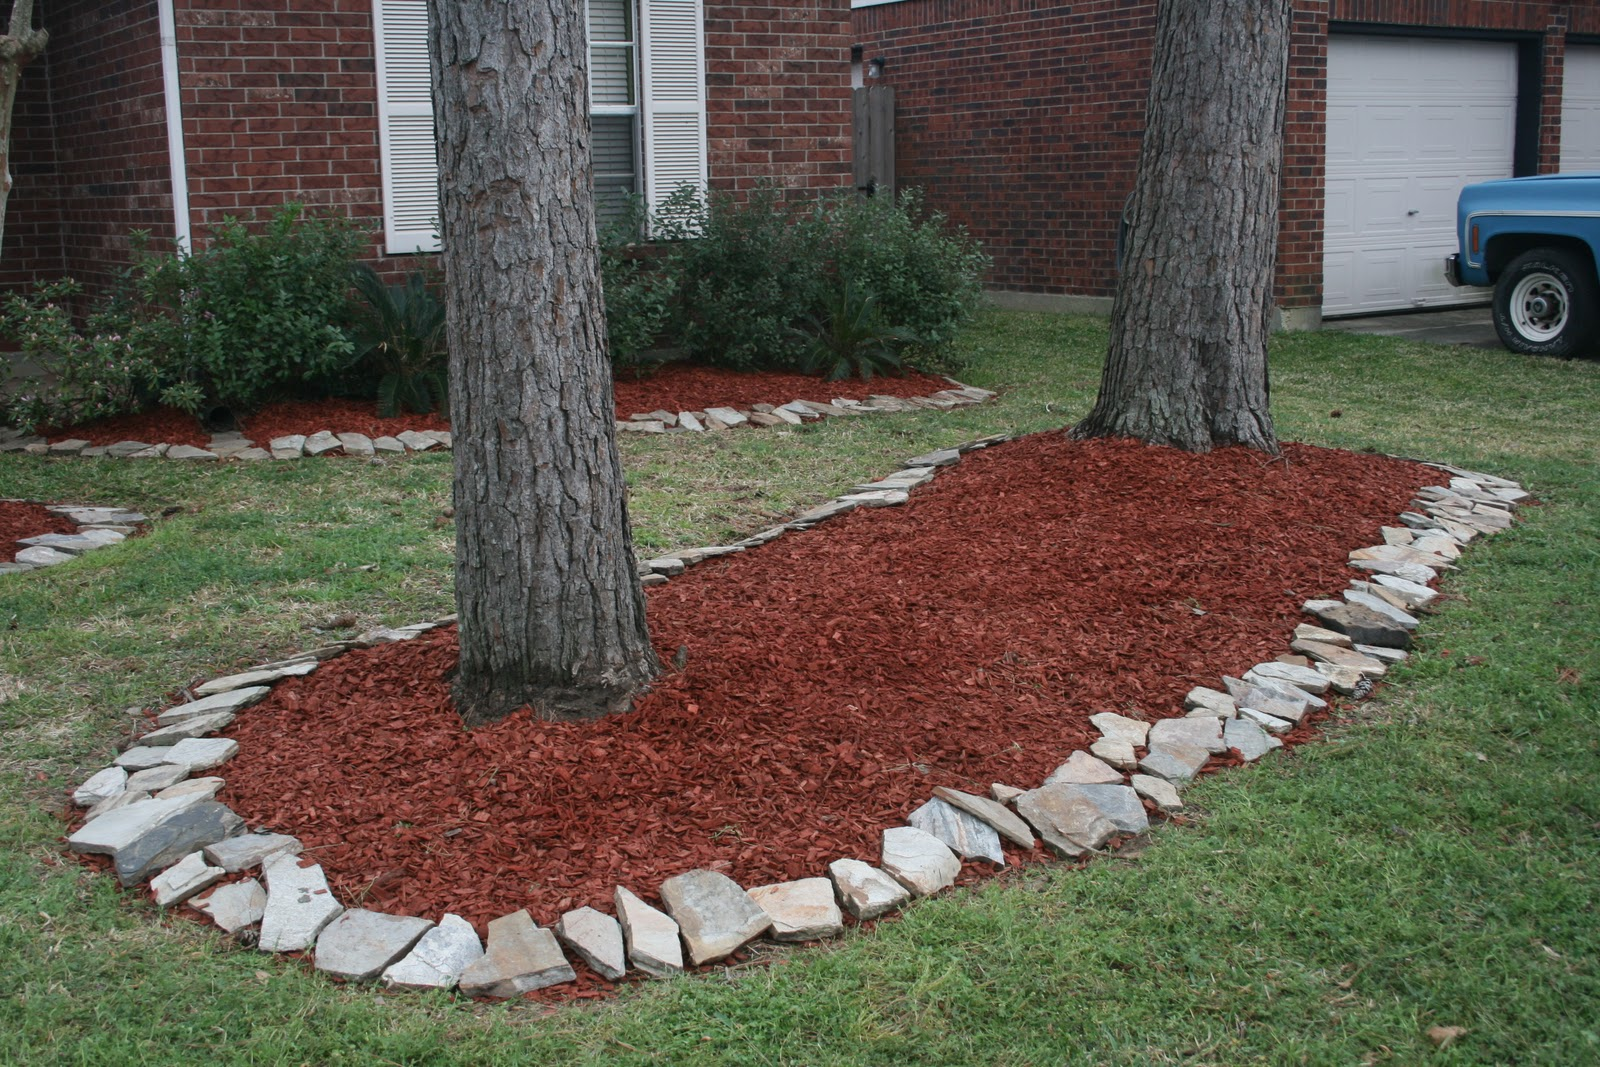 Flower Beds With Rock Borders - Home Decorating Ideas